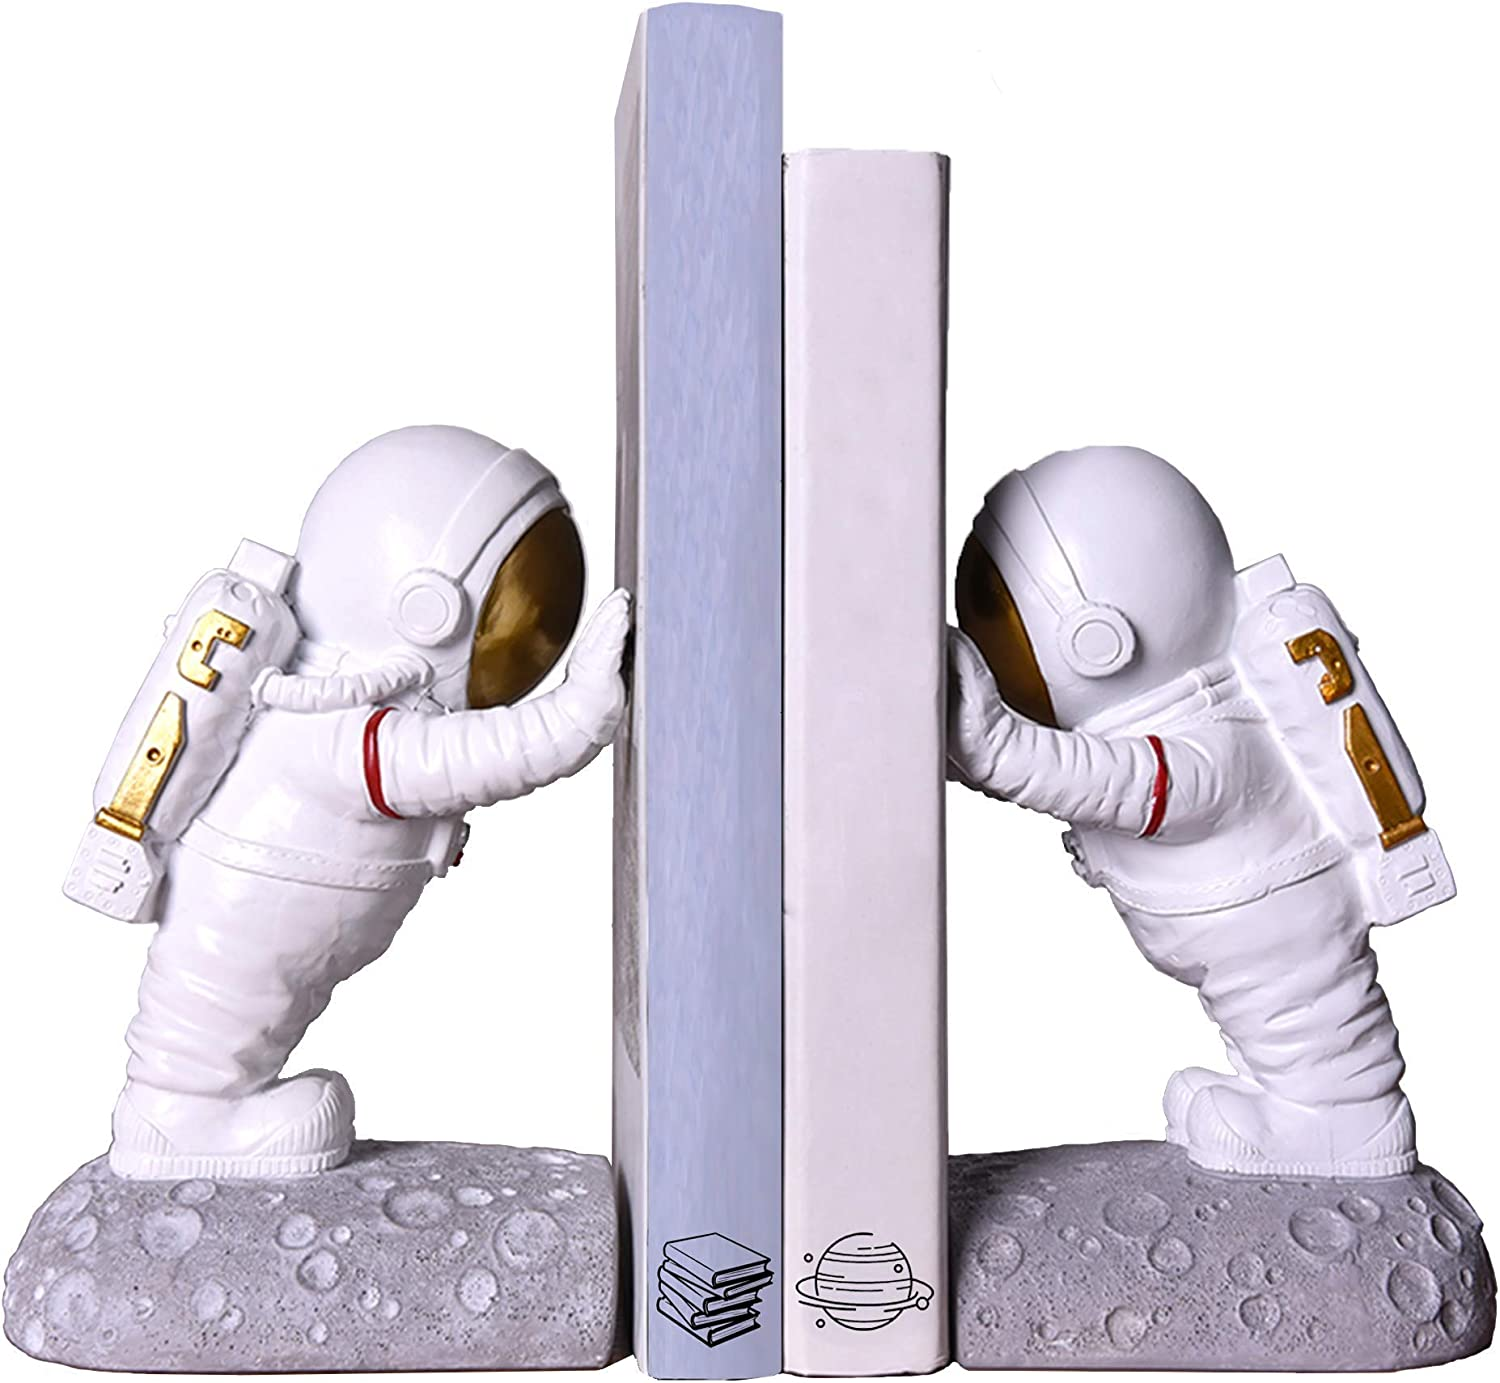 Joyvano Astronaut Decorative Bookend - Book Ends for Office Decorative Bookends for Shelves, Book Holders for Shelves, Bookends Decorative Books, Modern Bookends for Heavy Books Holder, Book Stoppers